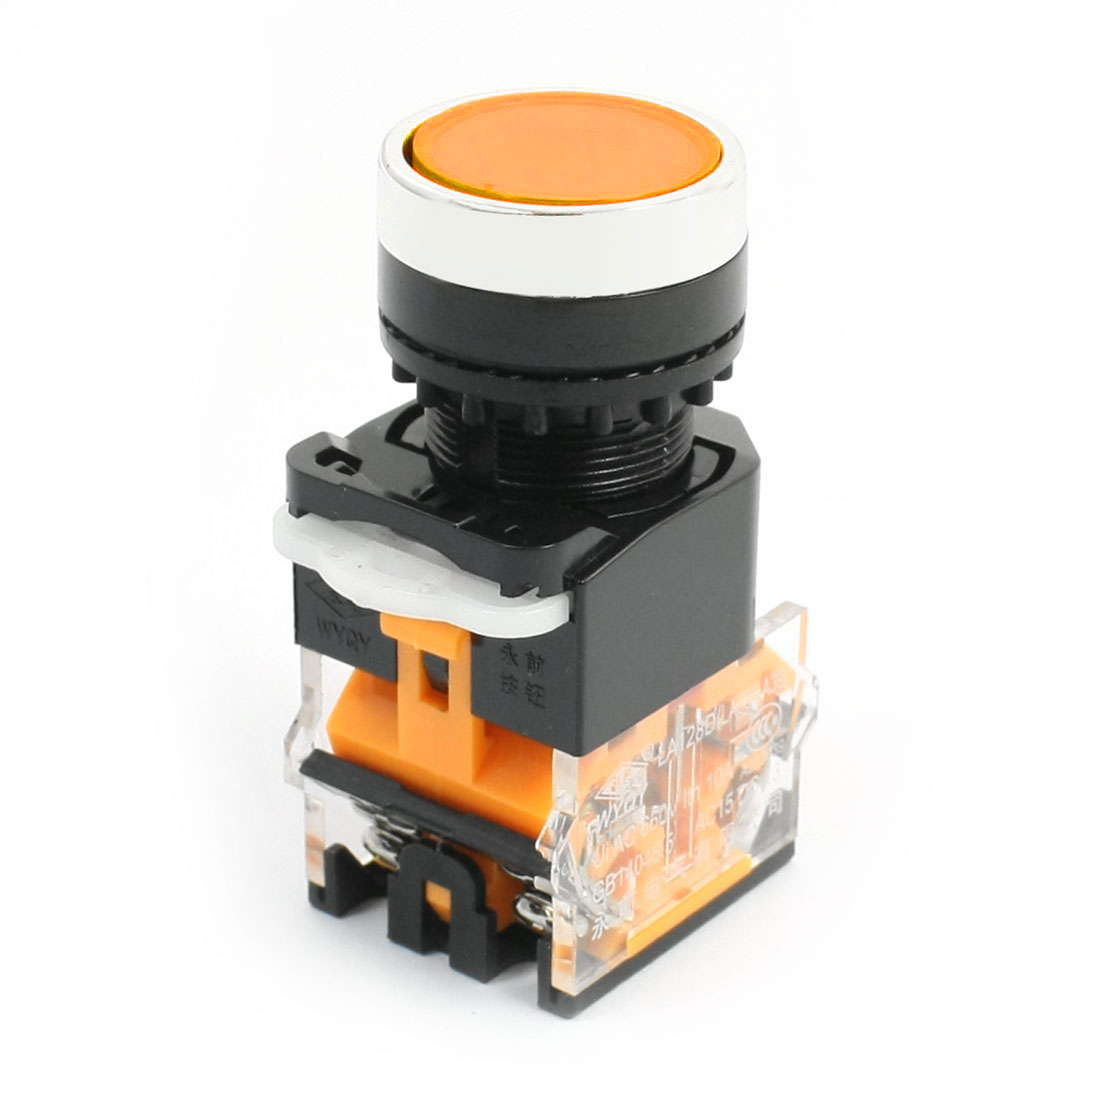 Panel Mount Orange Round Cap Momentary DPST Emergency Stop Switch AC 660V 10A